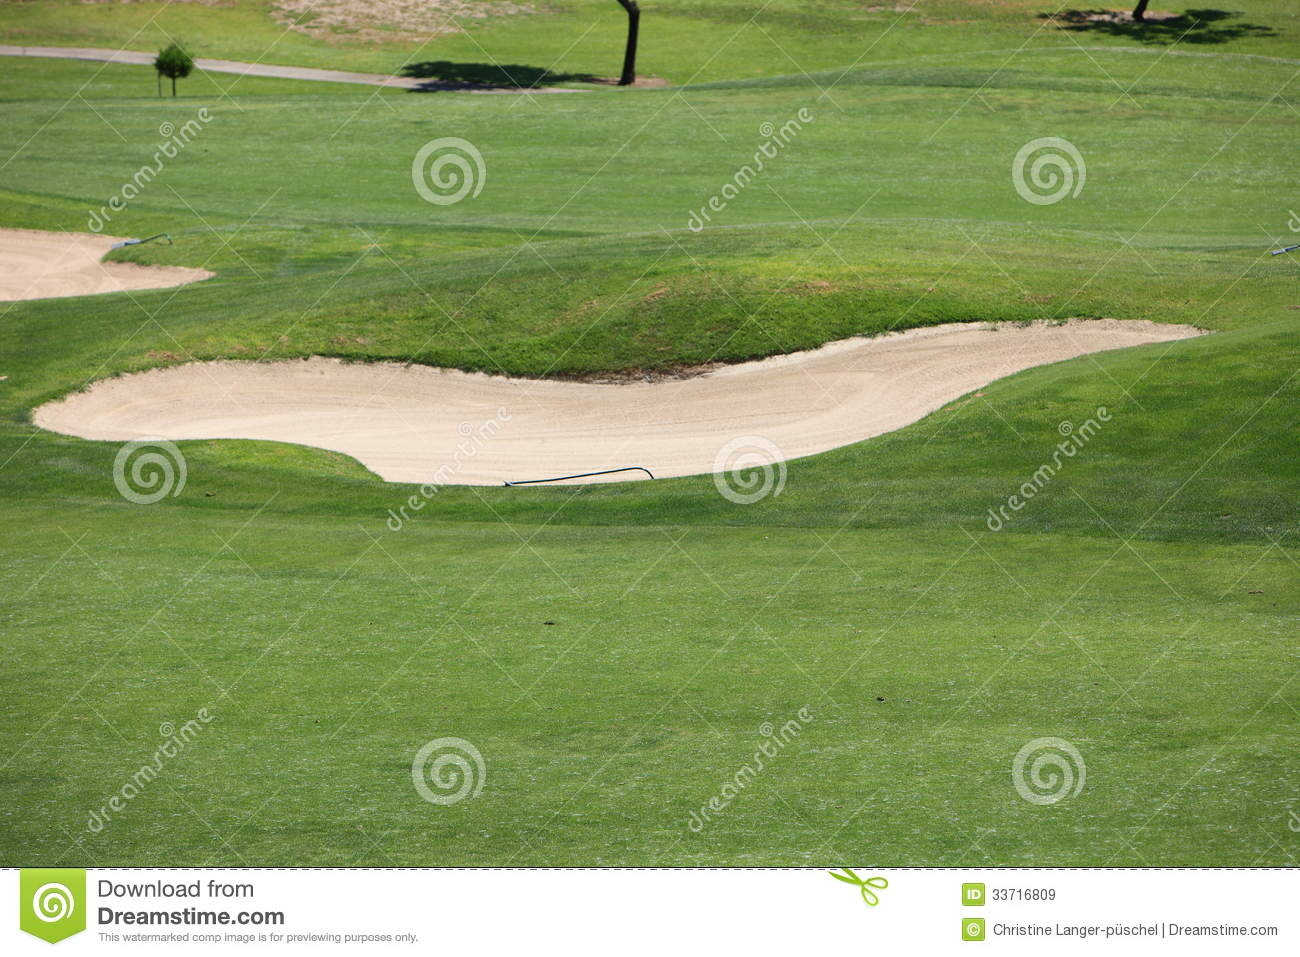 Sand trap or bunker on a golf course royalty free stock images image 33716809 - Wand trap ...